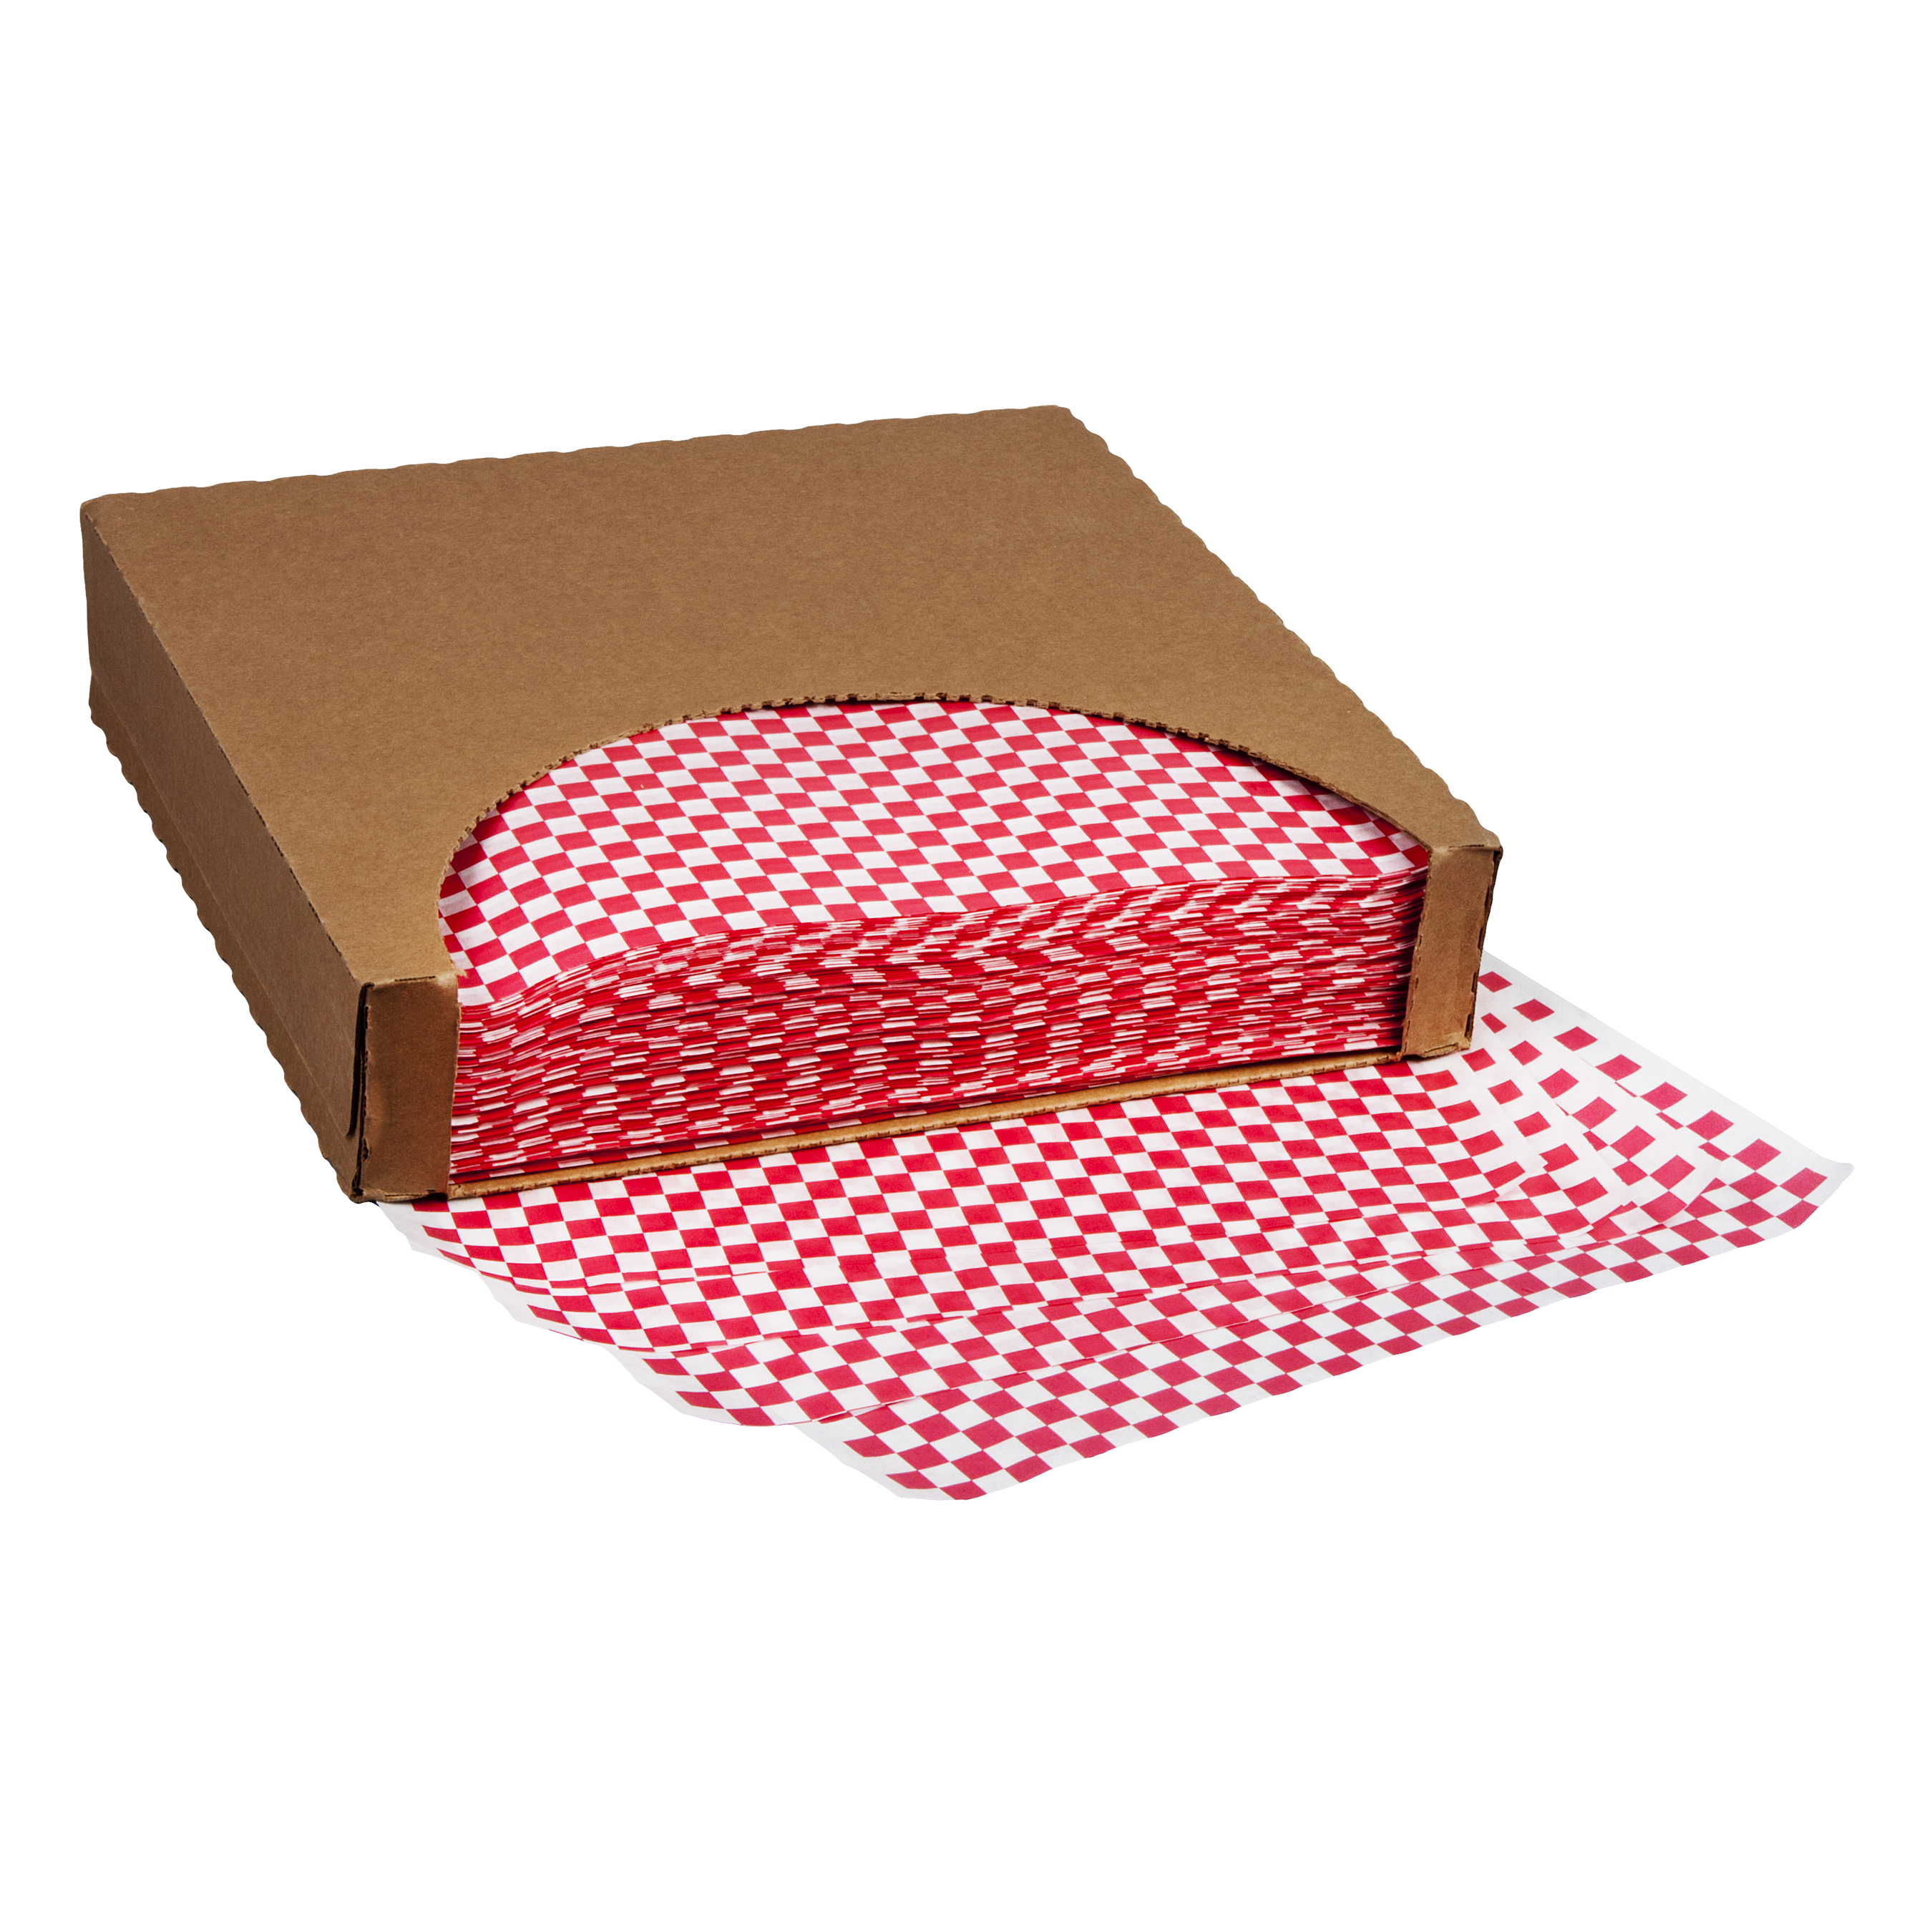 WAX DELI SHEET/RED CHK 12X12